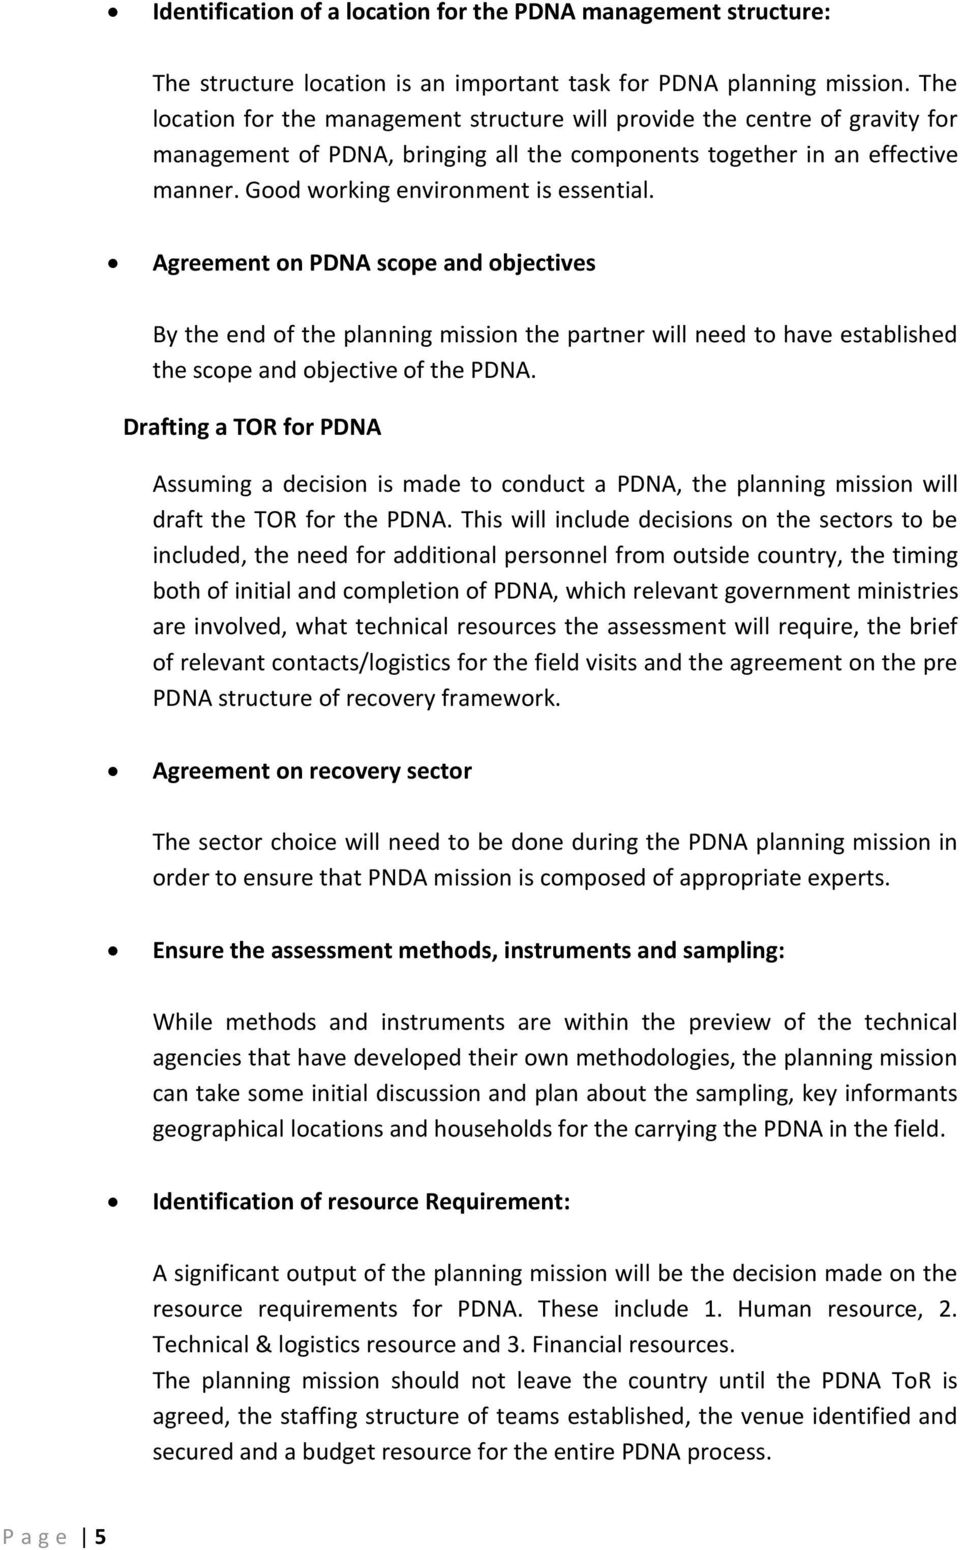 Agreement on PDNA scope and objectives By the end of the planning mission the partner will need to have established the scope and objective of the PDNA.